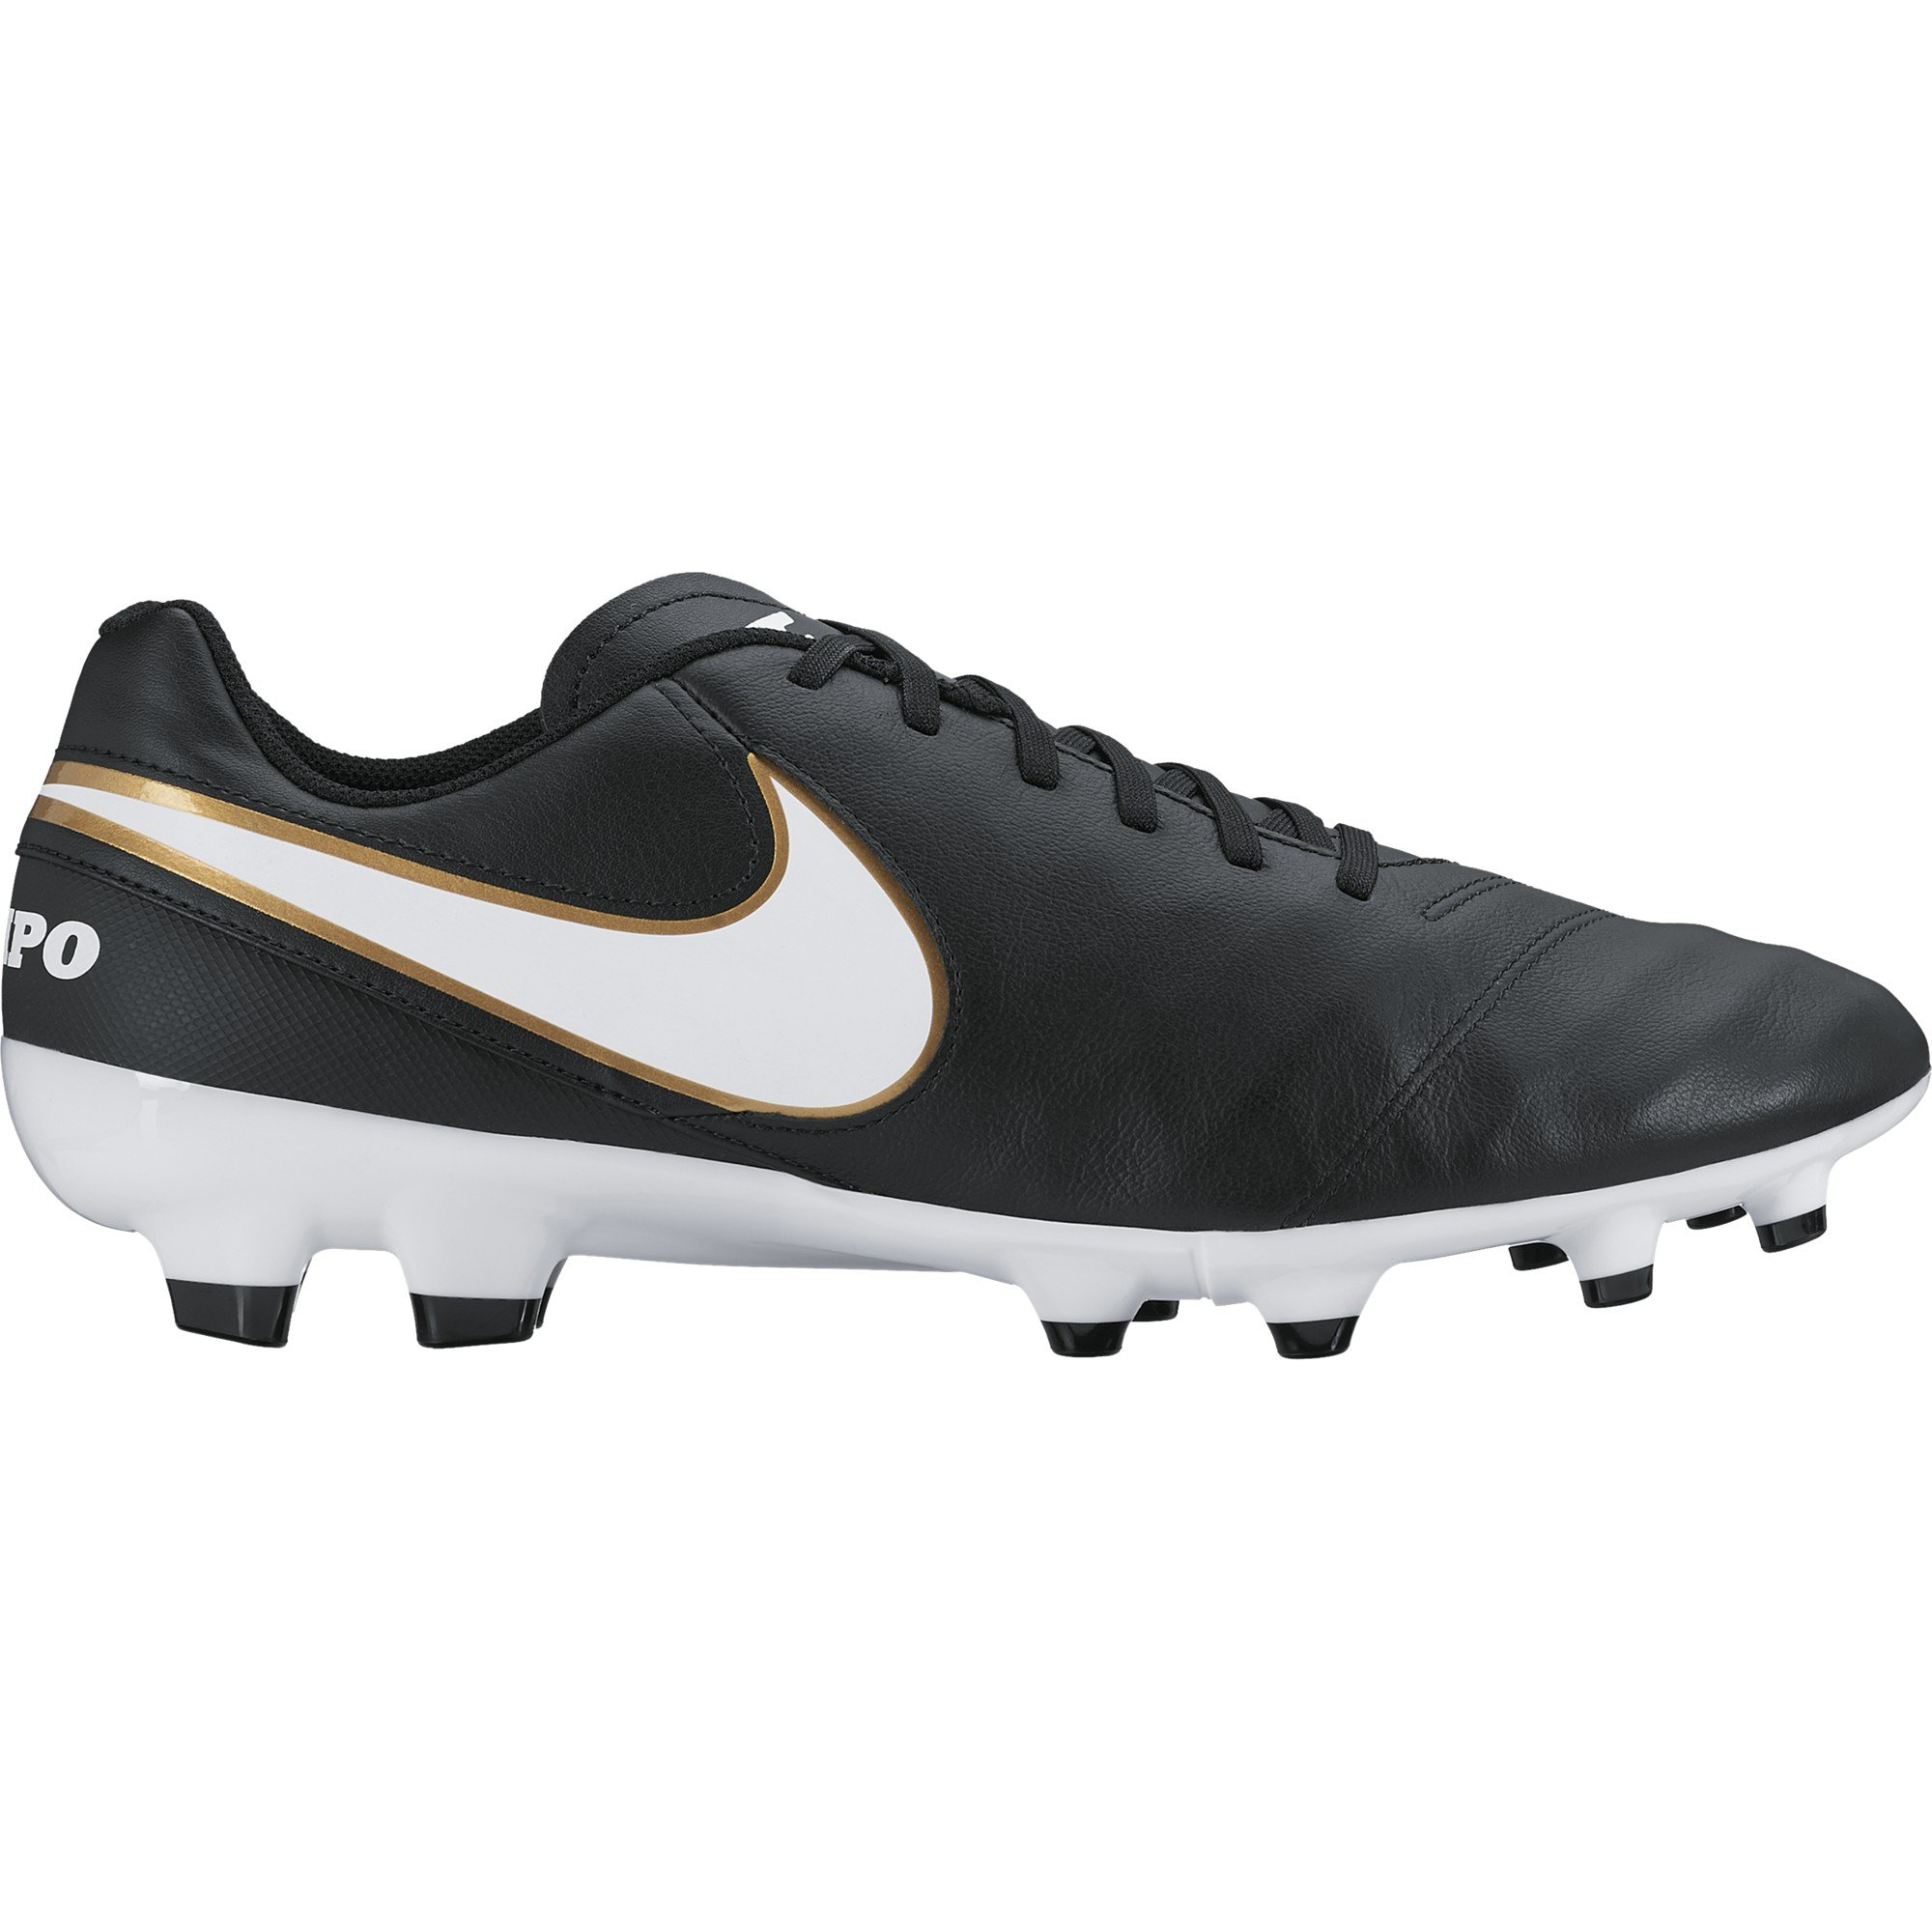 Nike Mens Tiempo Genio II Leather Fg Black/White/Metallic Gold Soccer Cleat 8.5 Men US